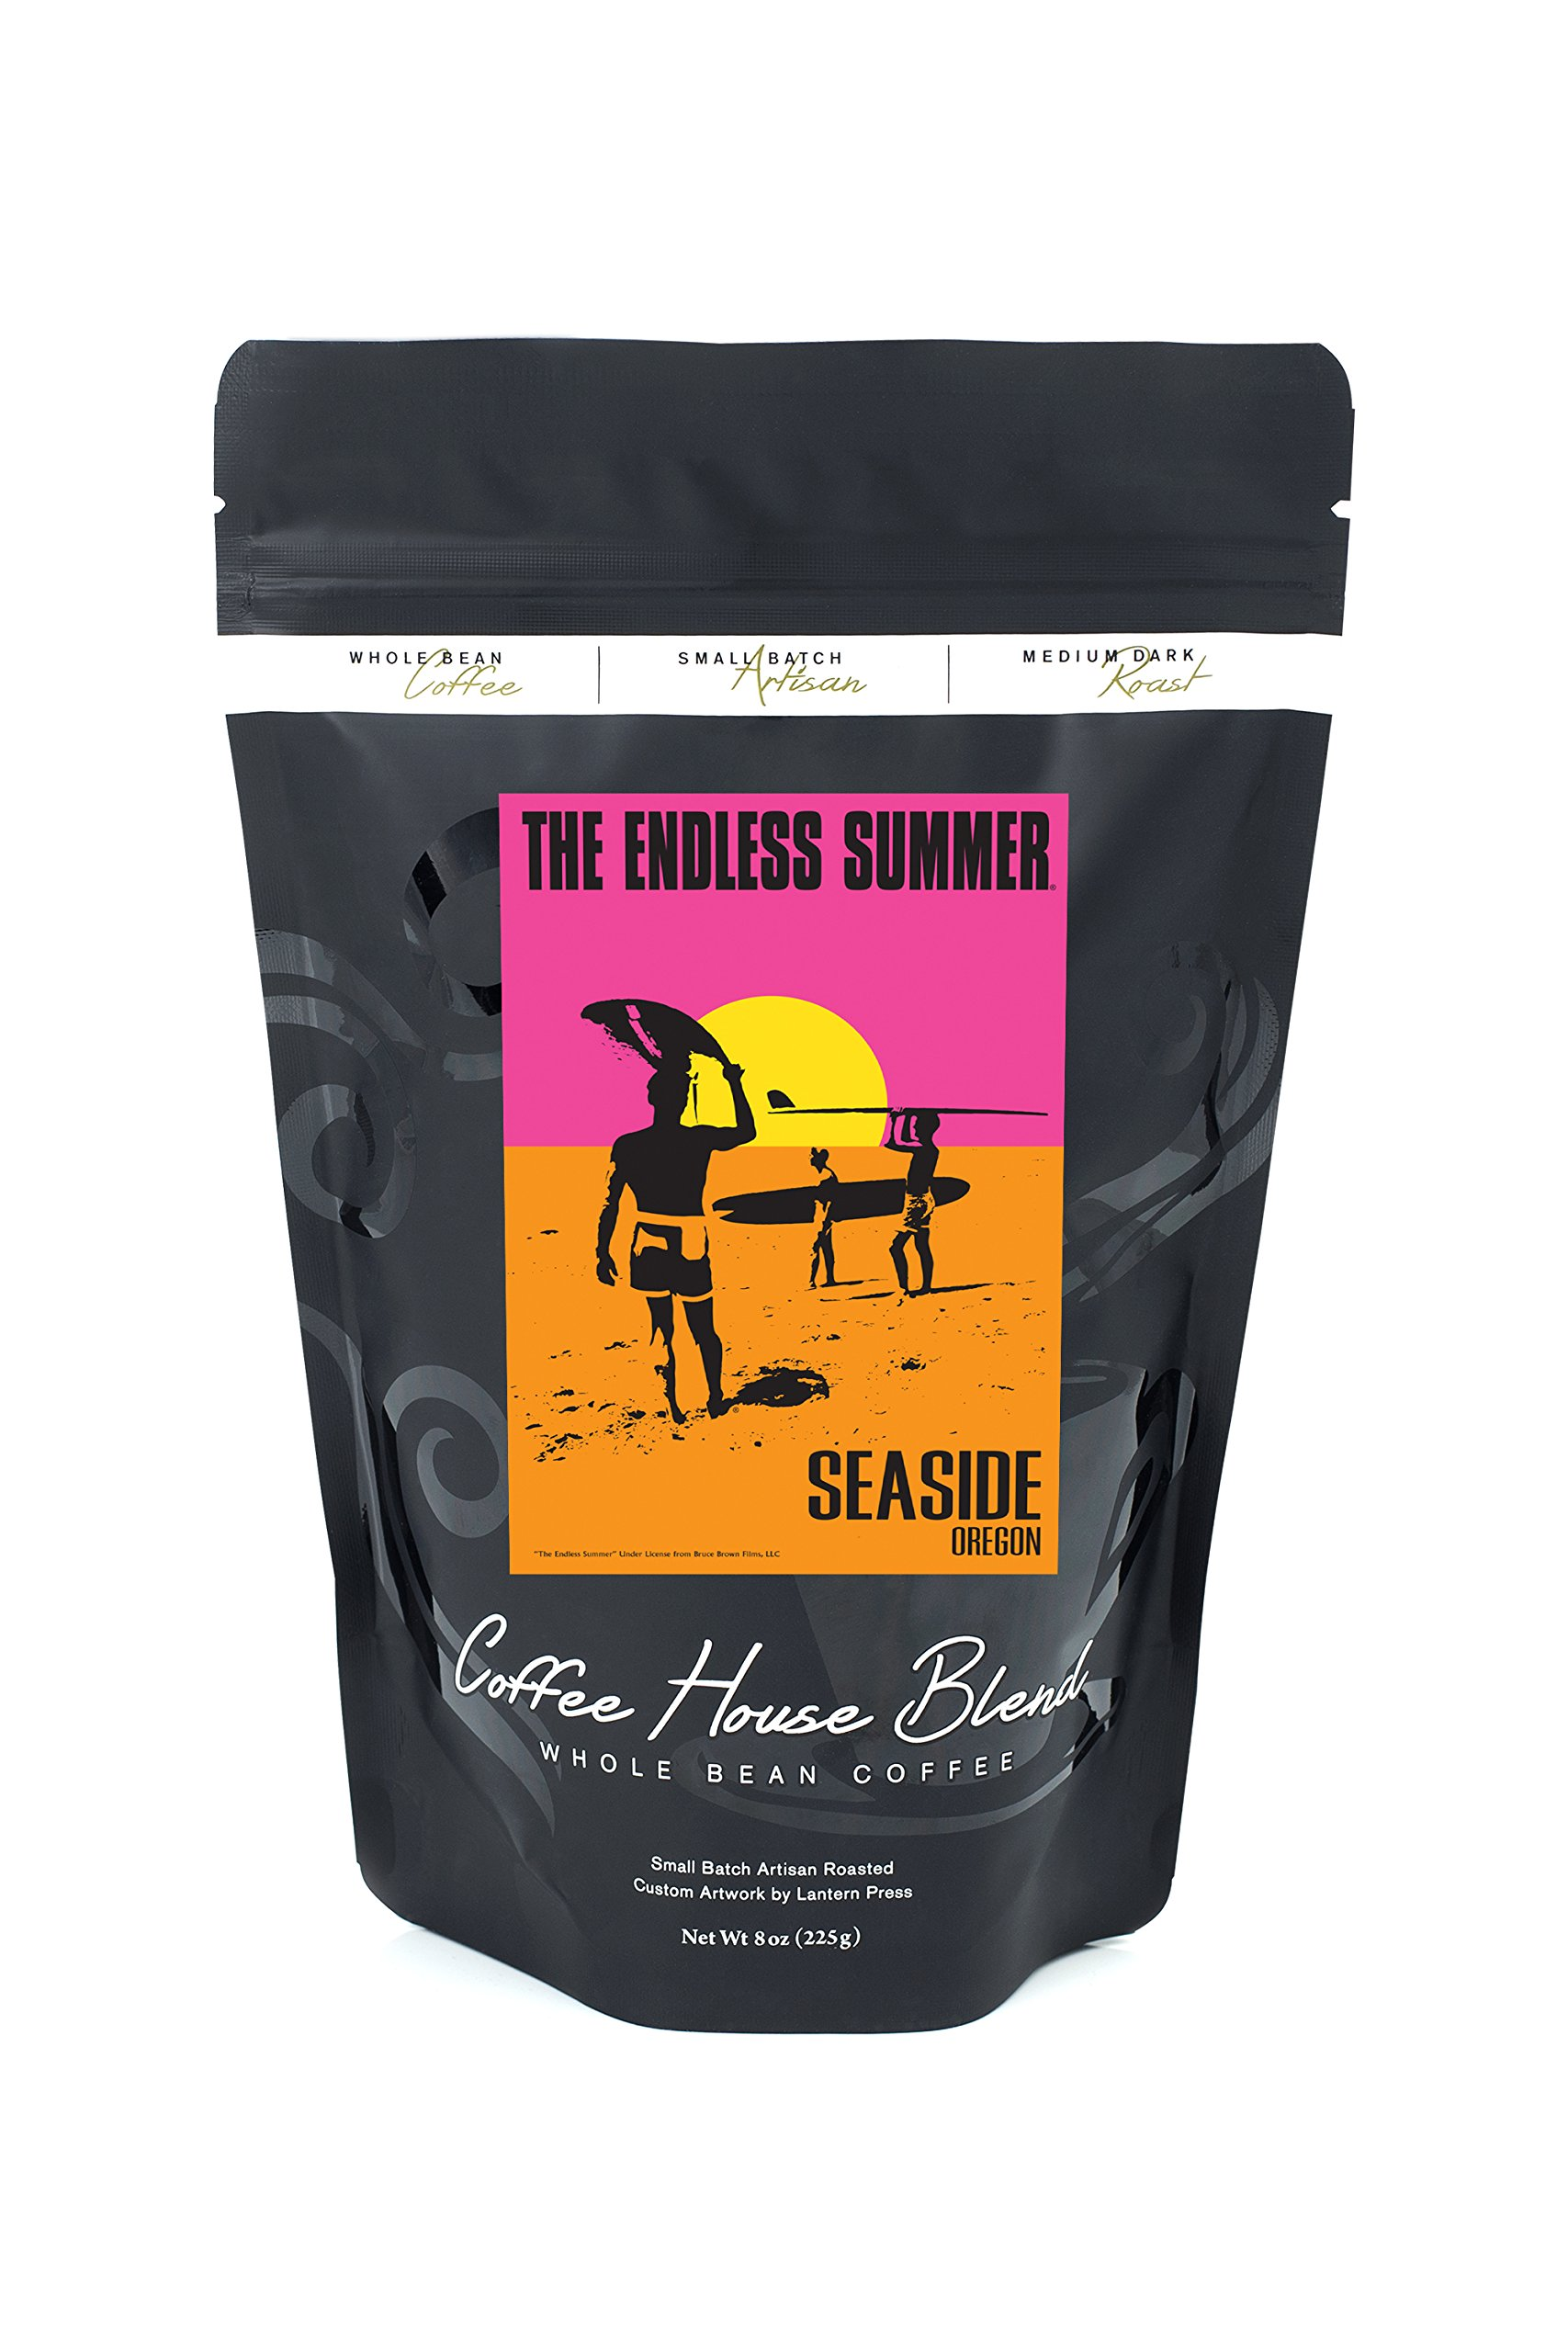 Seaside, Oregon - The Endless Summer - Original Movie Poster (8oz Whole Bean Small Batch Artisan Coffee - Bold & Strong Medium Dark Roast w/ Artwork)